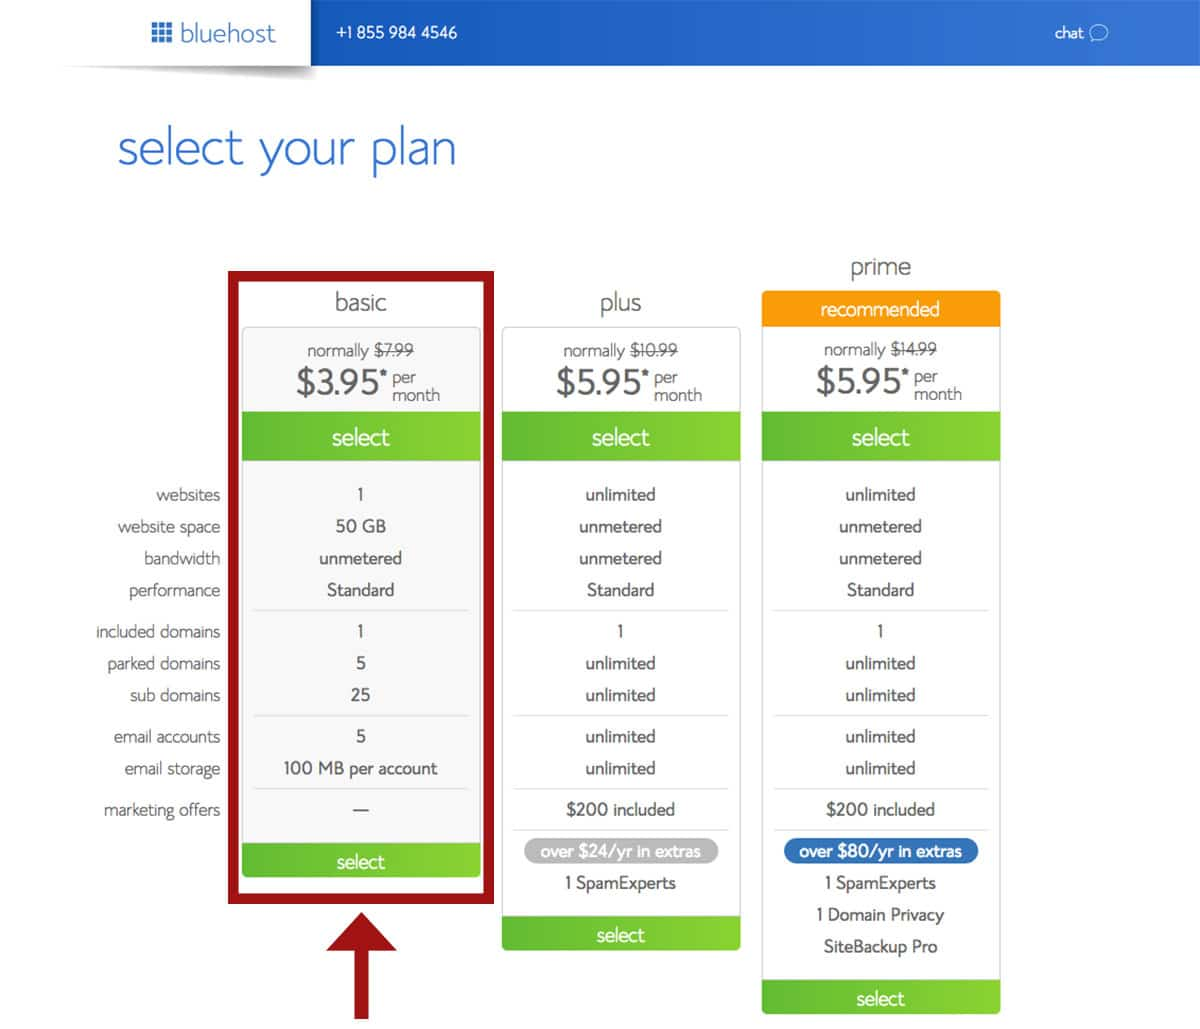 Bluehost hosting plan descriptions